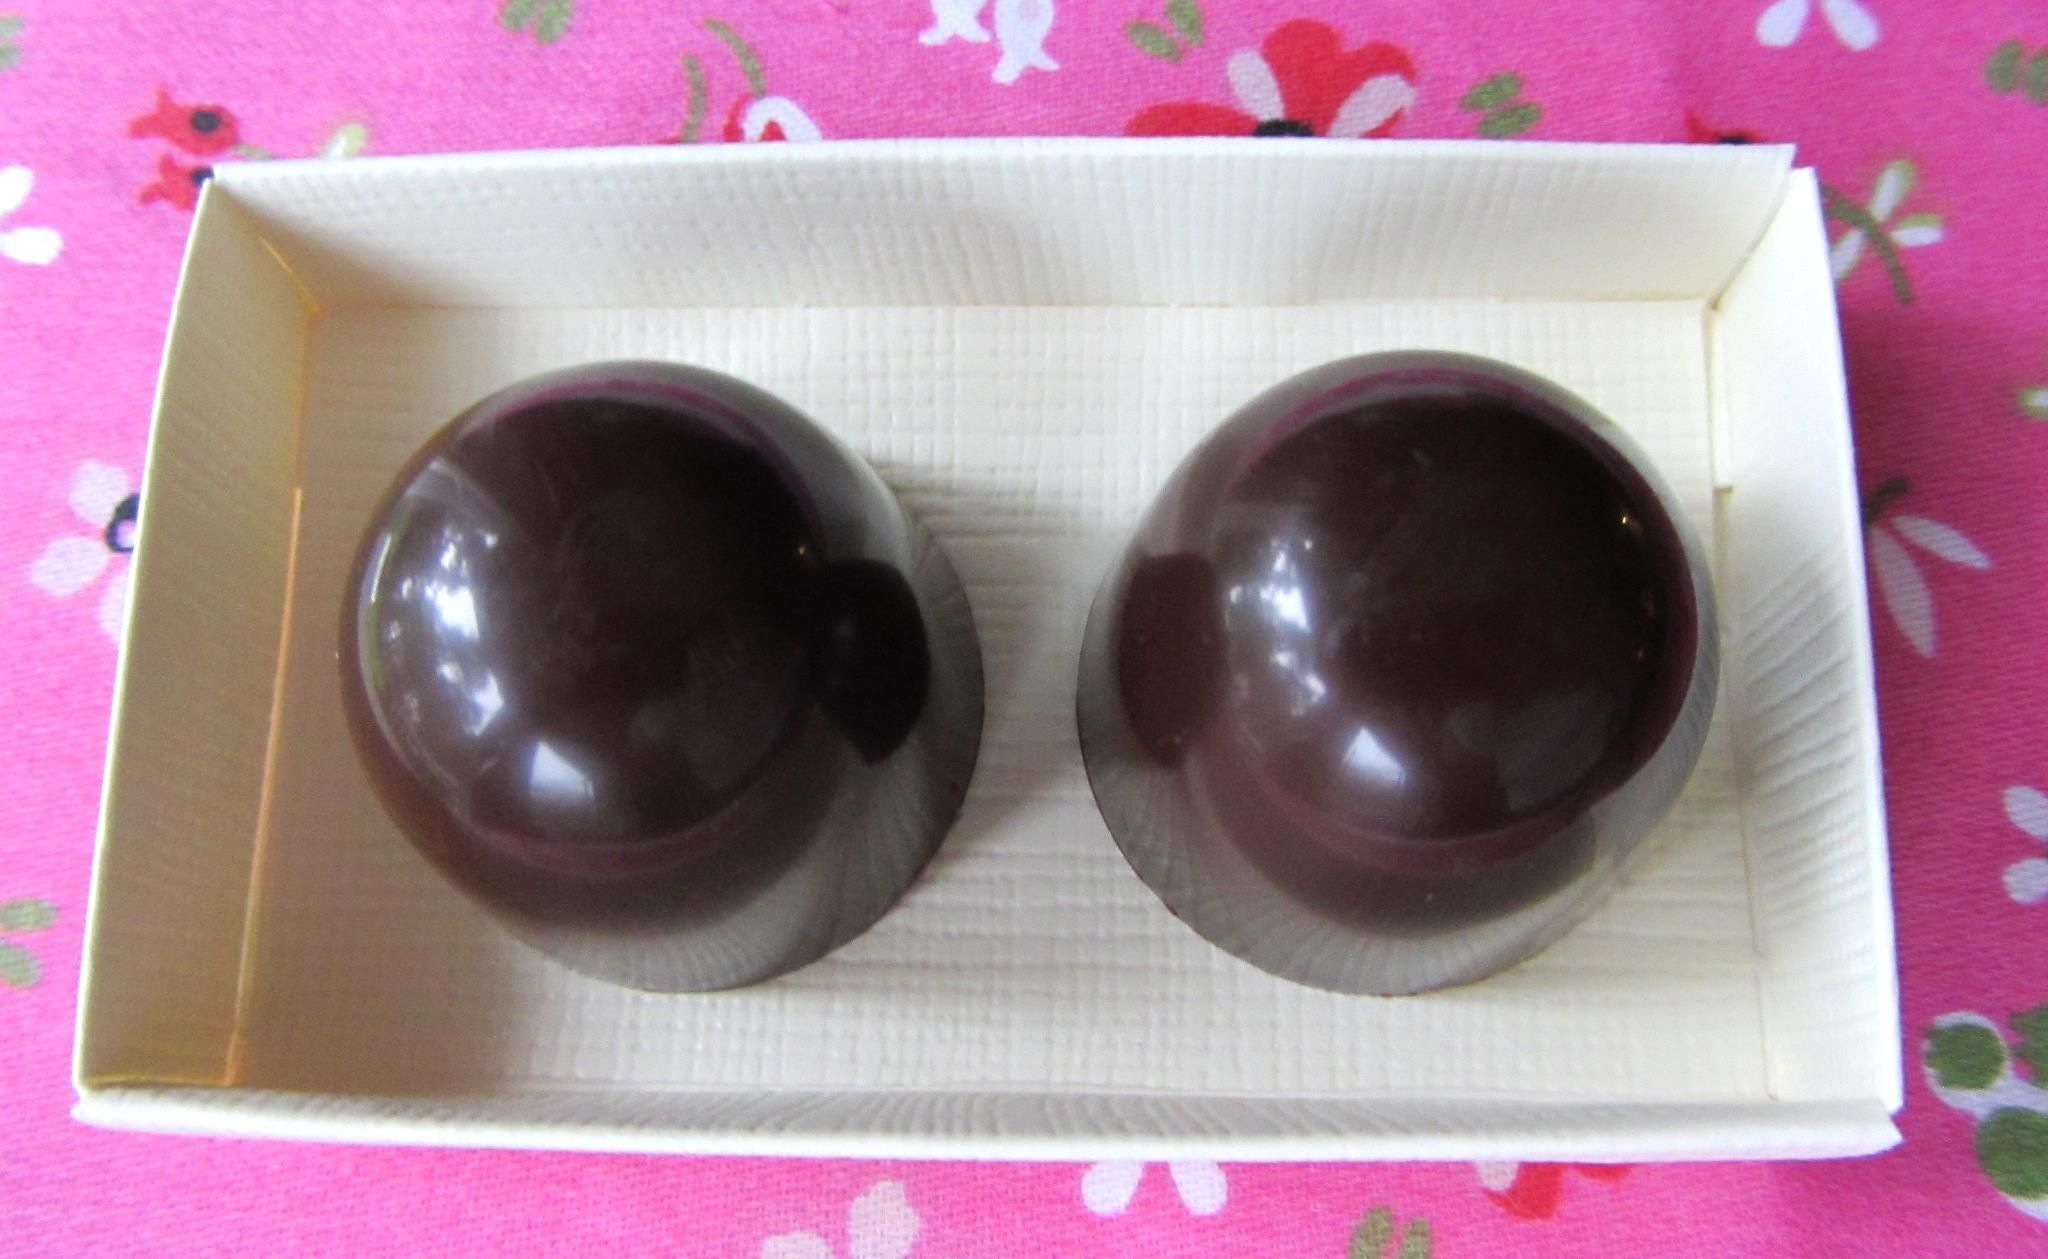 Fresh passion fruit pralines from the Swedish praline makers Cacaobönorna.